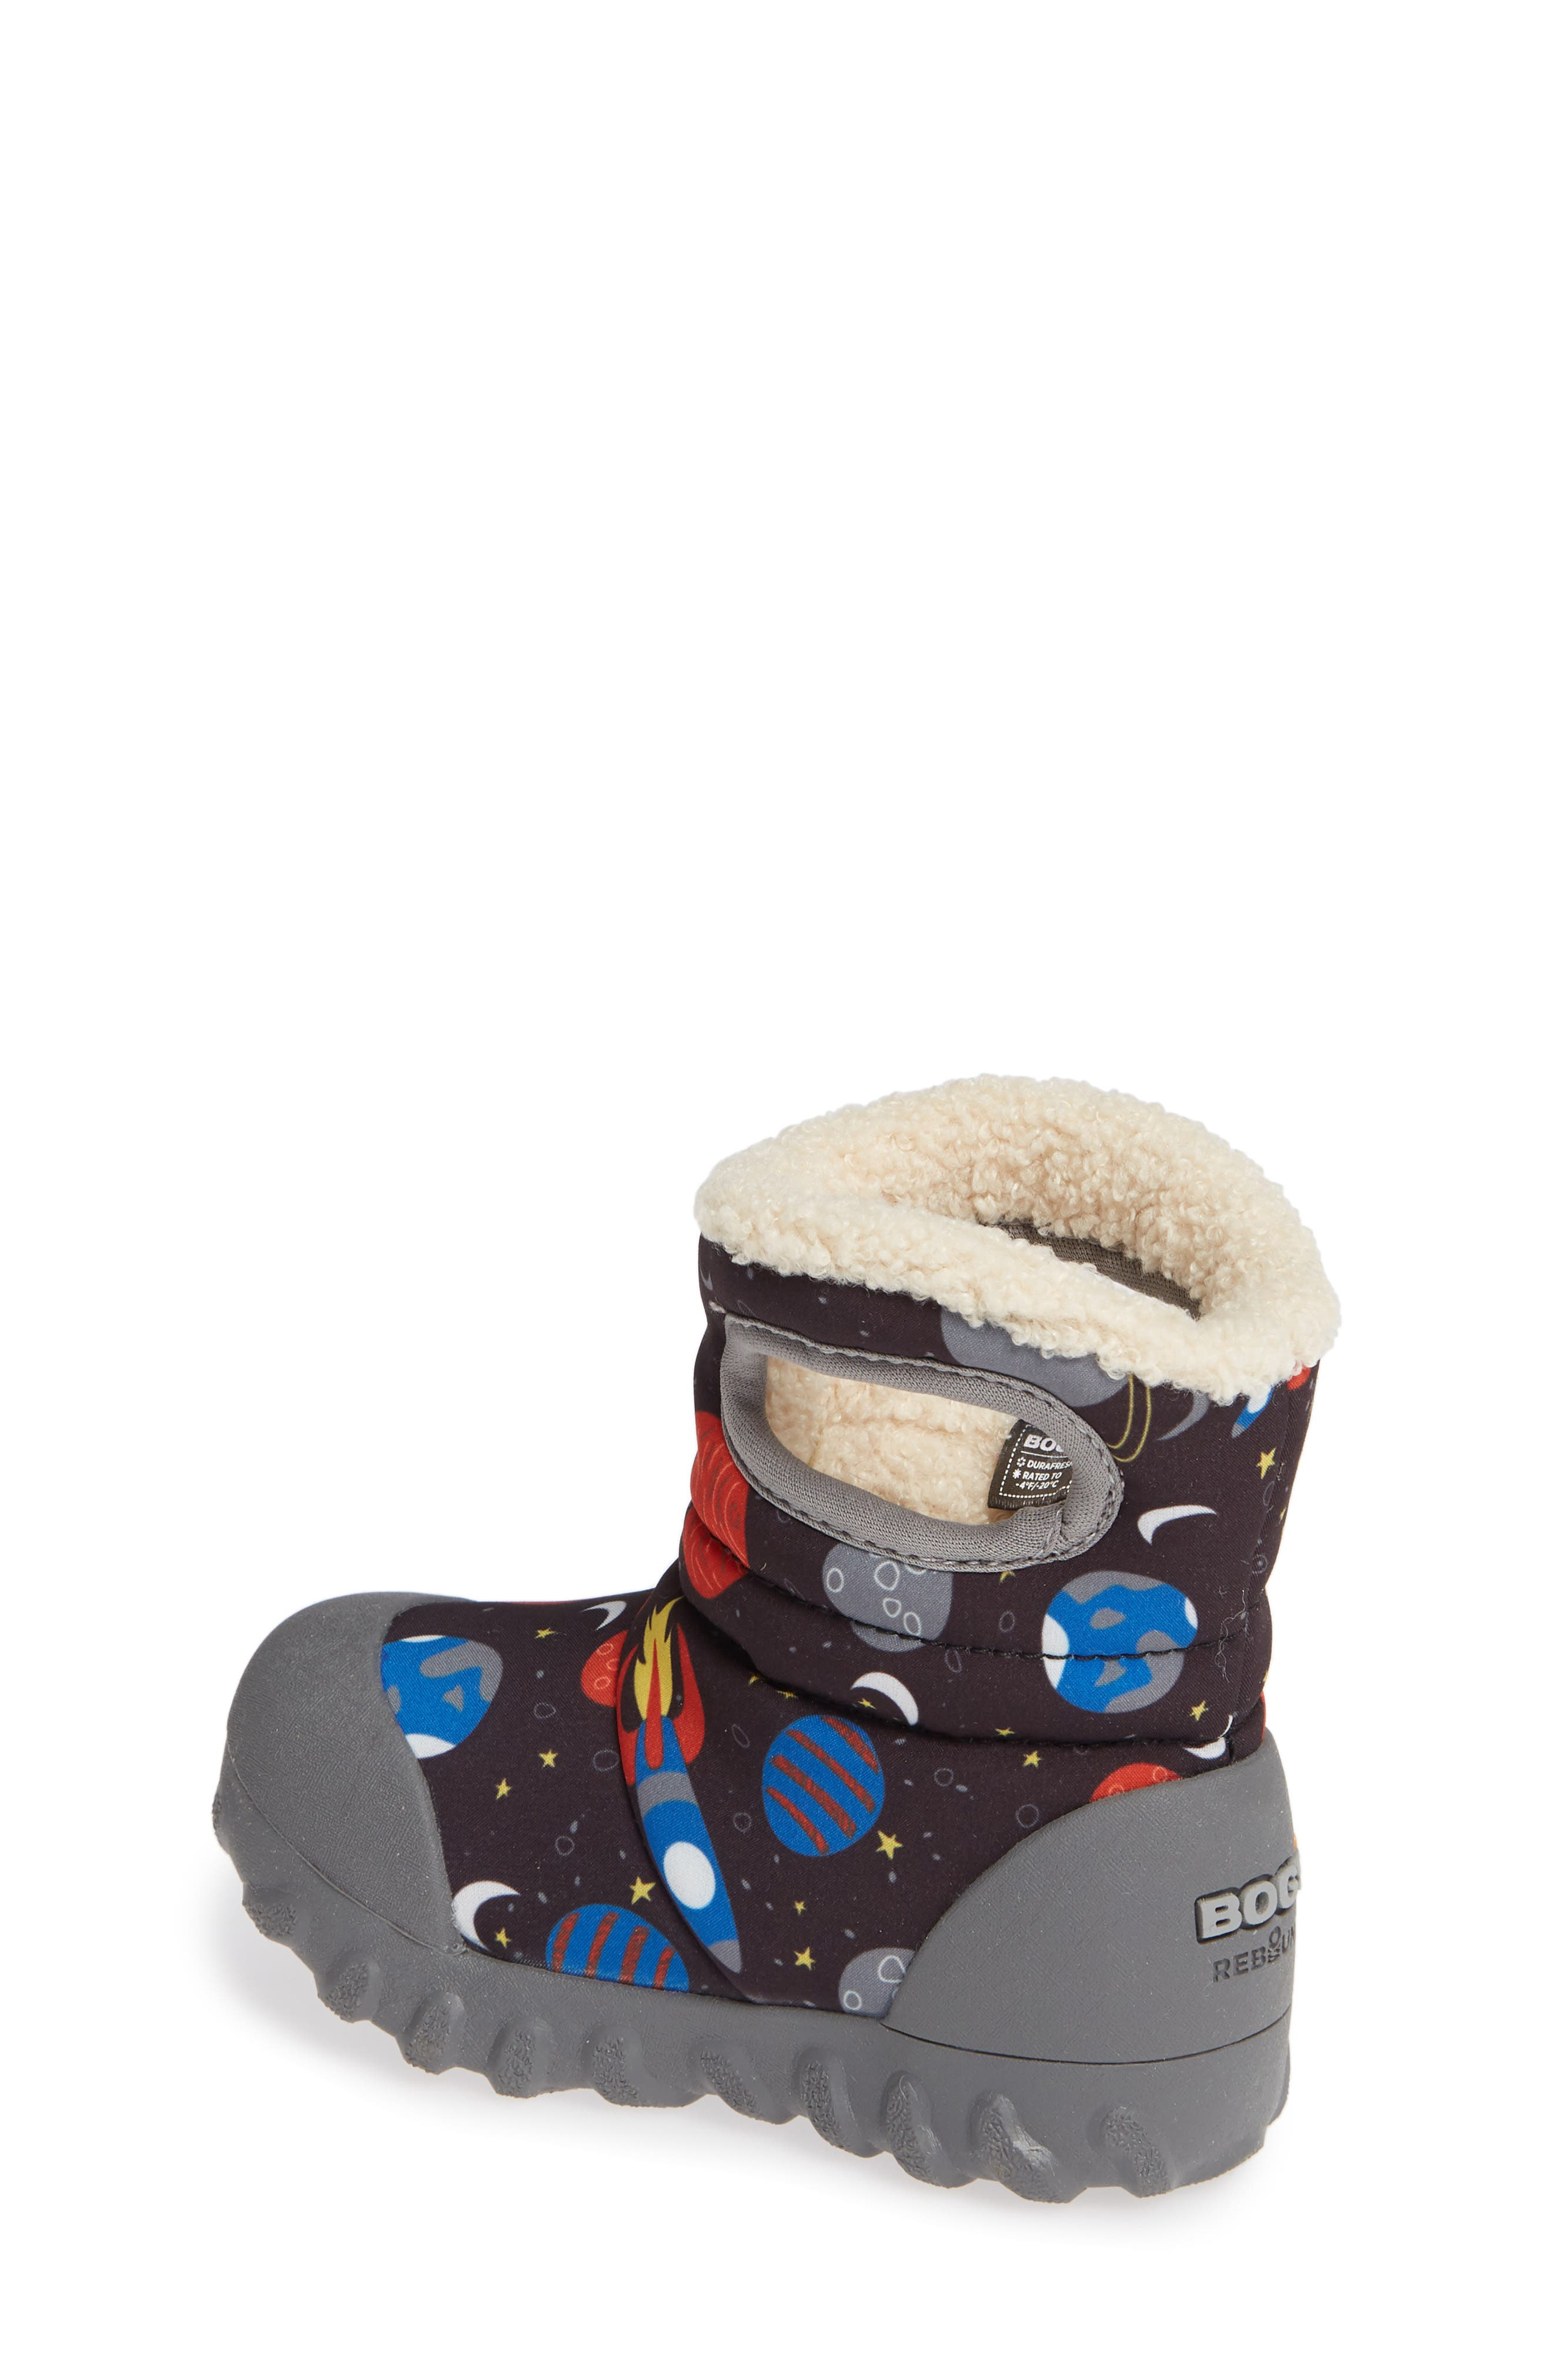 BOGS, B-MOC Space Waterproof Insulated Faux Fur Boot, Alternate thumbnail 2, color, BLACK MULTI